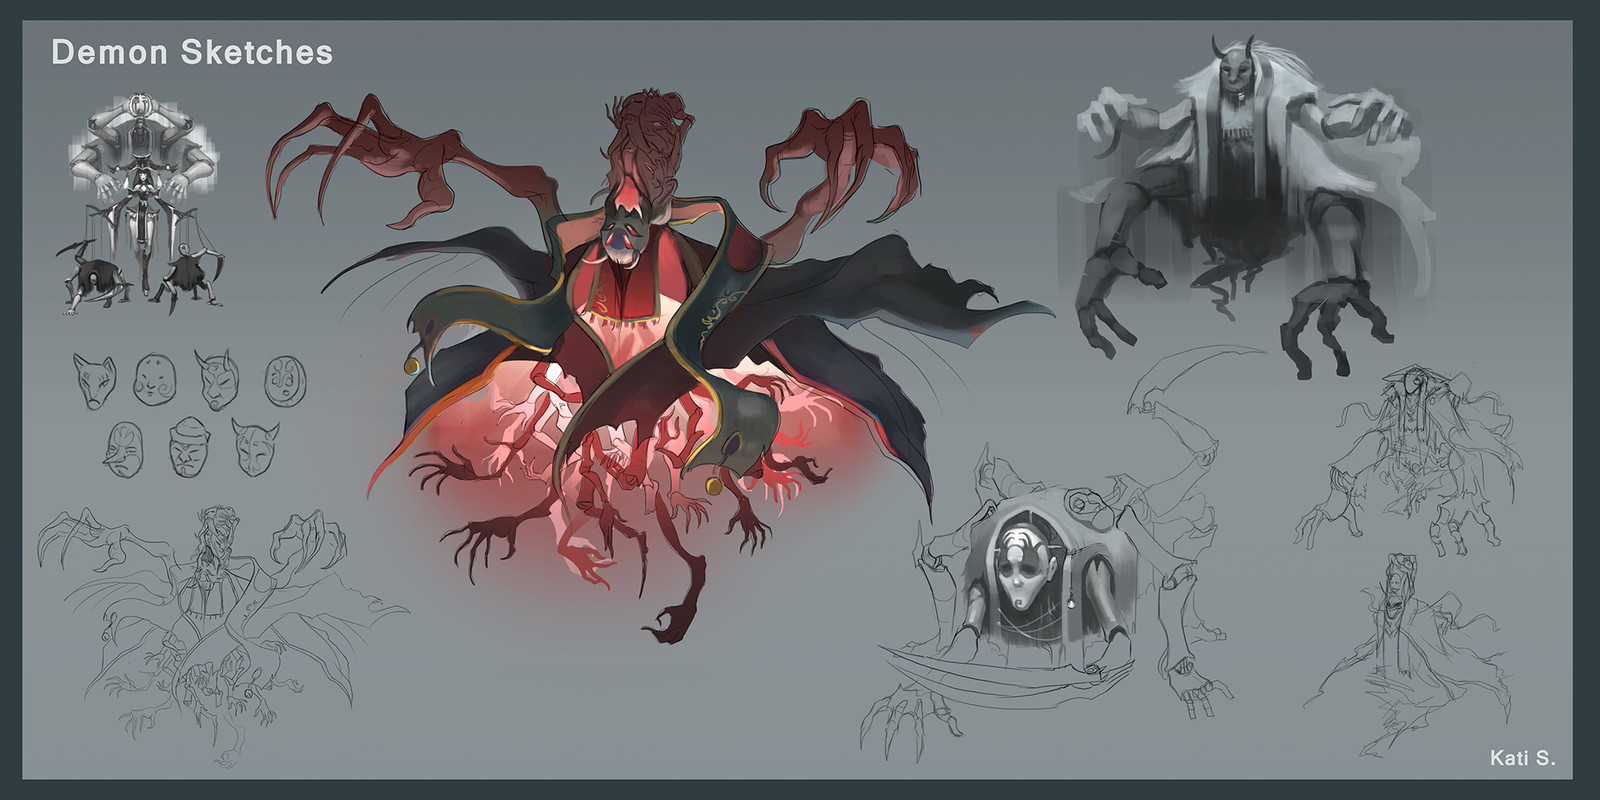 The demonic ghost concept